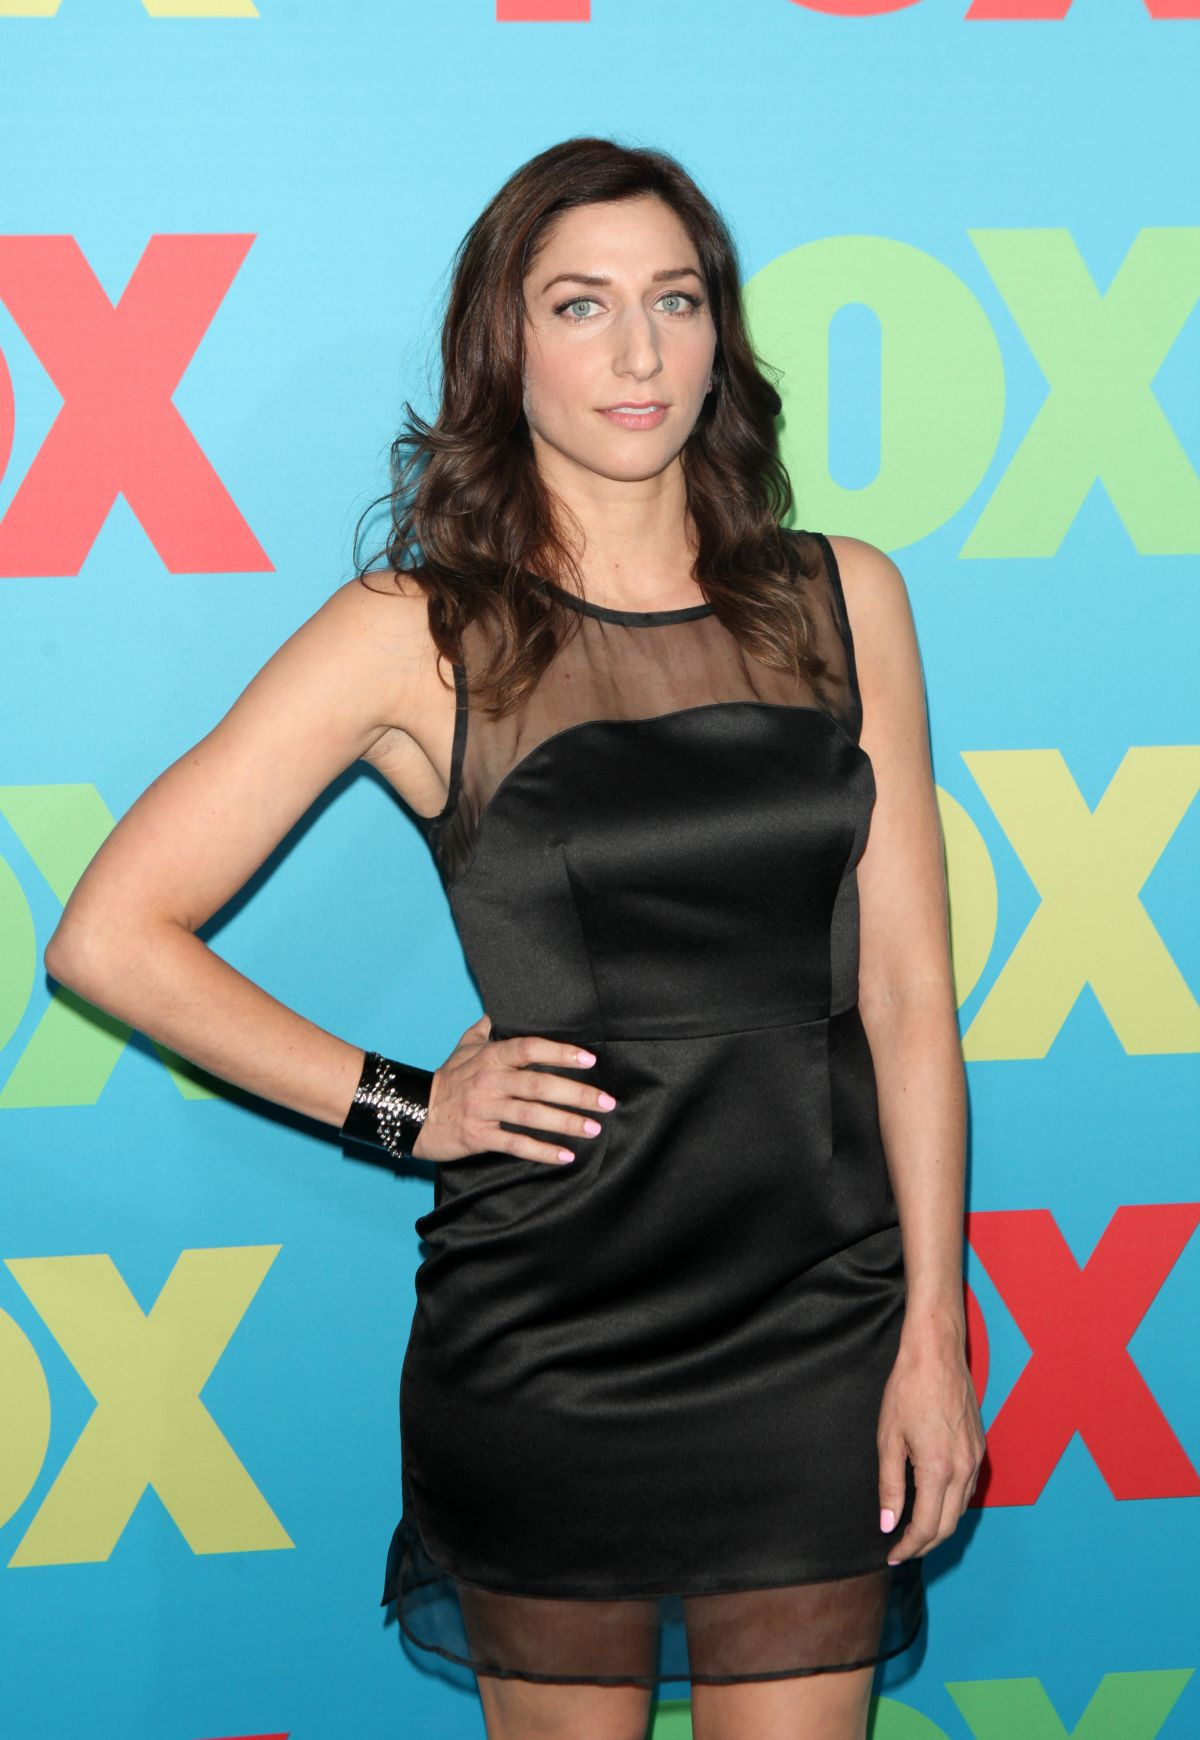 CHELSEA PRETTI at FOX Upfront Presentation in New York